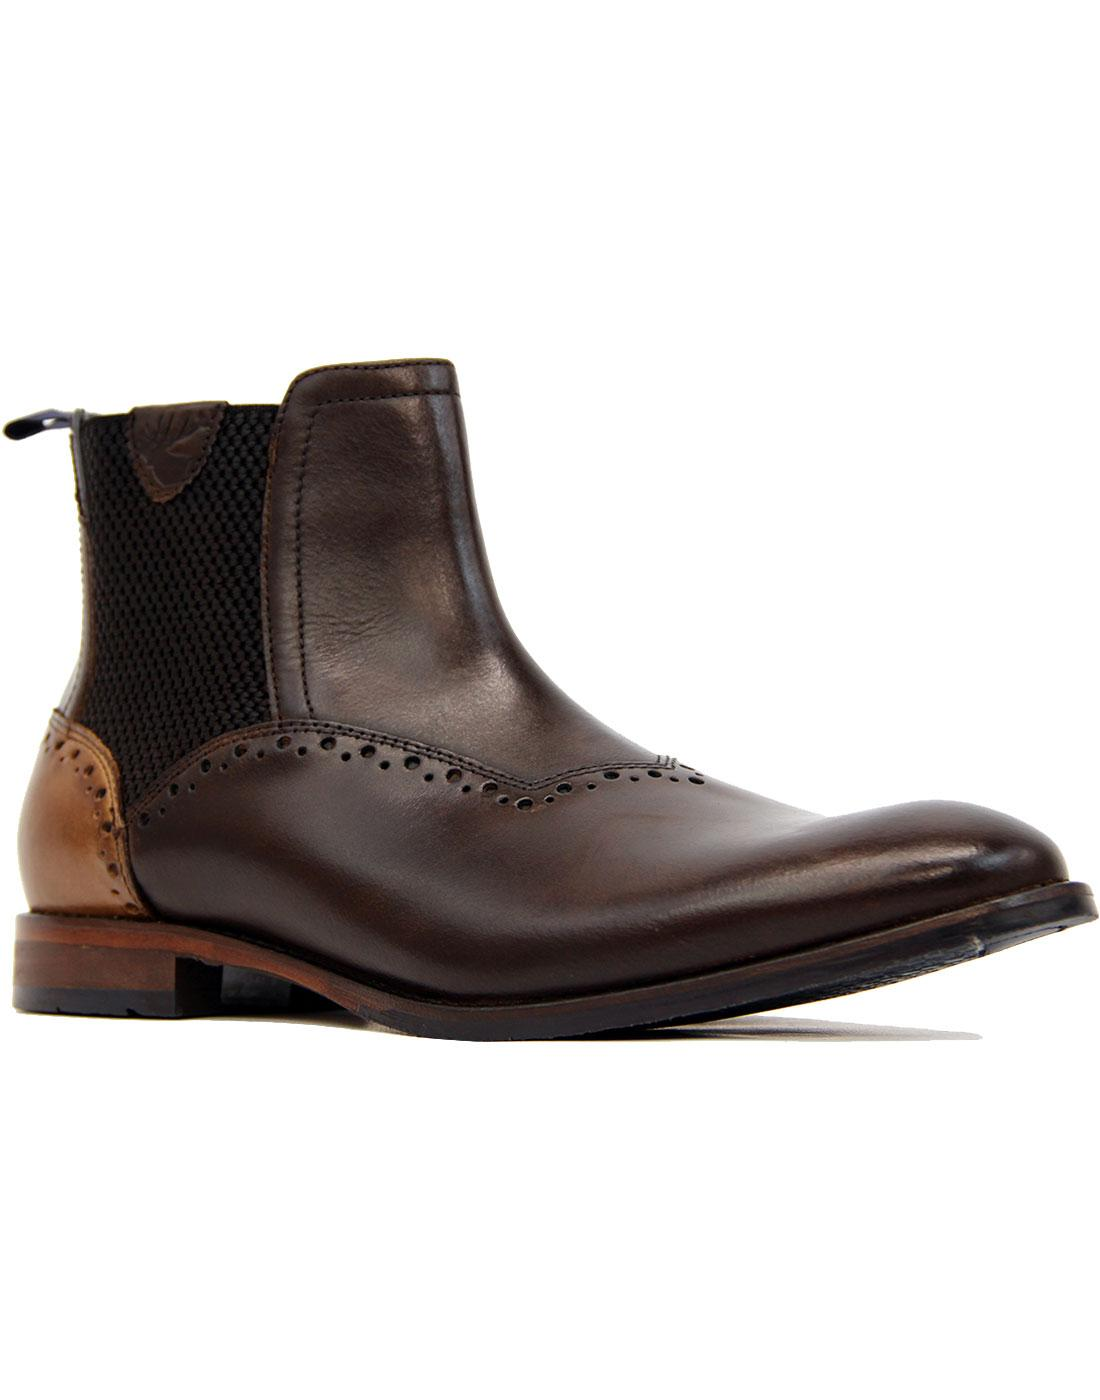 Edisford Goodwin Smith 60s Leather Chelsea Boots